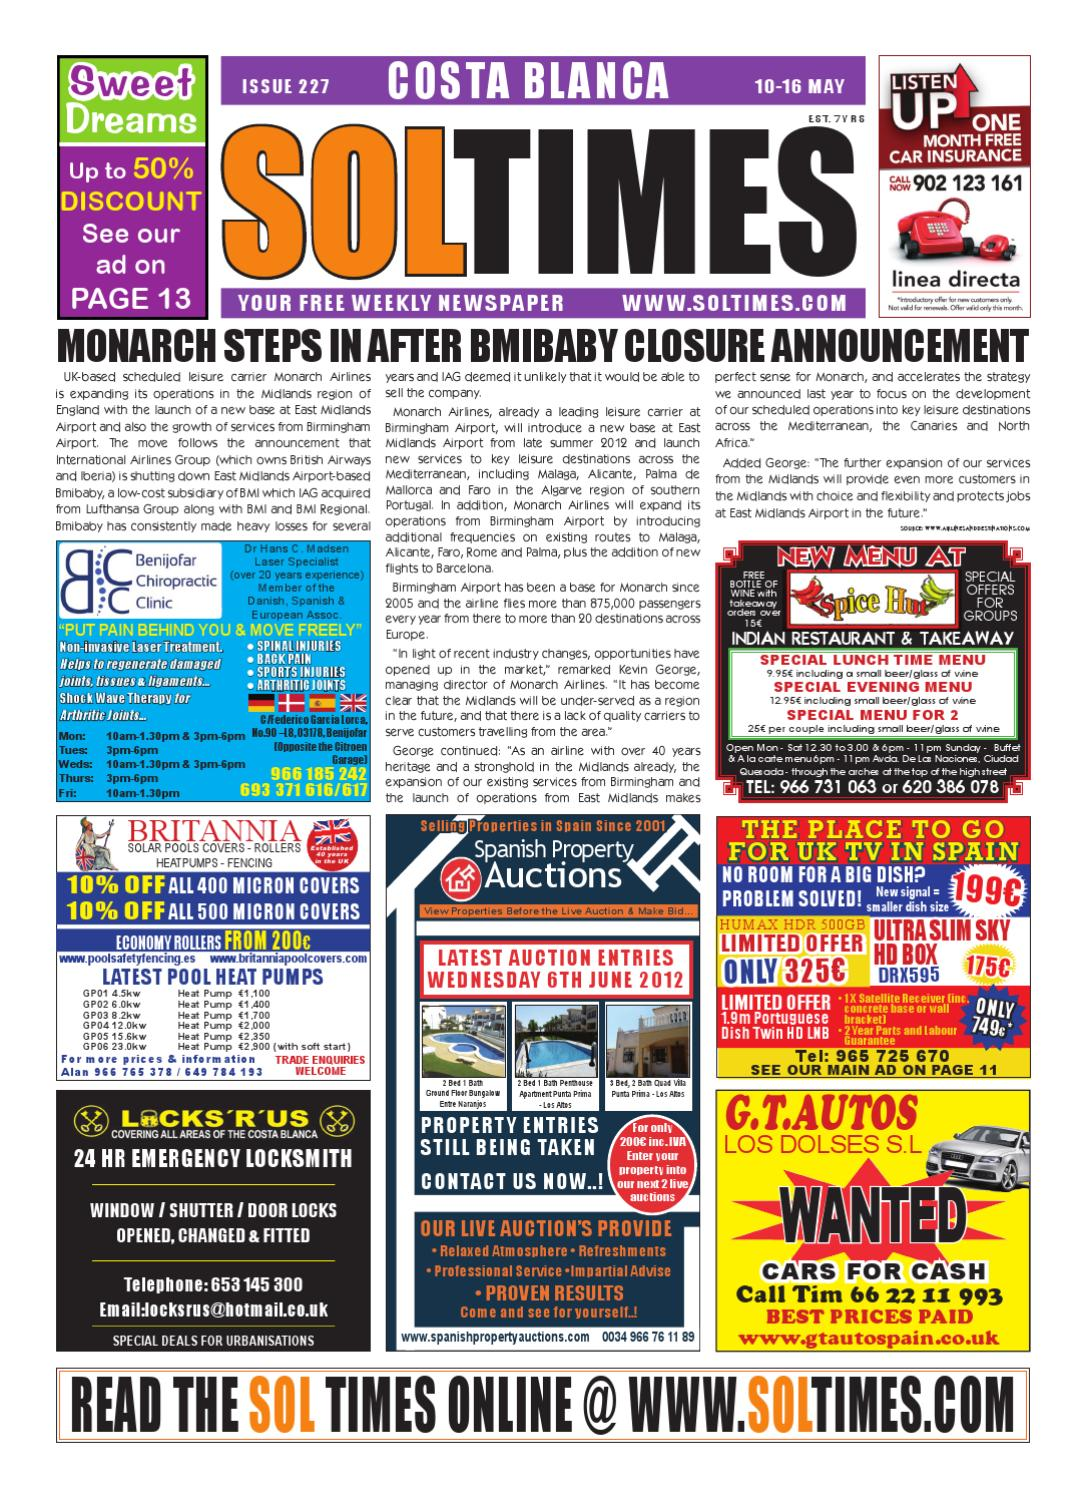 Sol Times Newspaper Issue 227 Costa Blanca Edition By Nigel